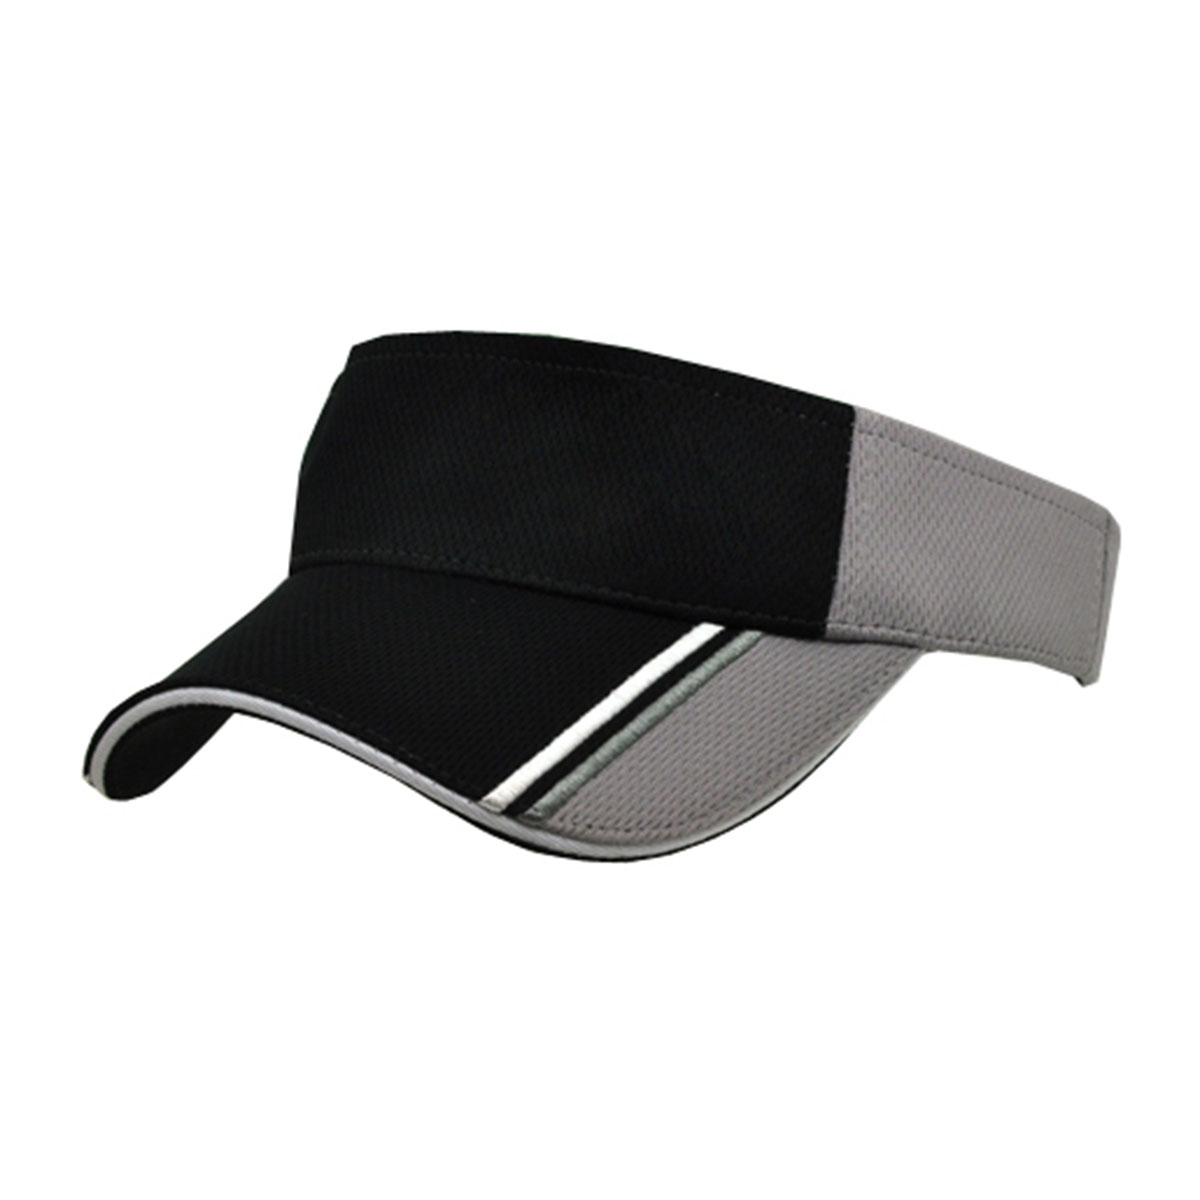 Visor-Black / White / Dark Grey